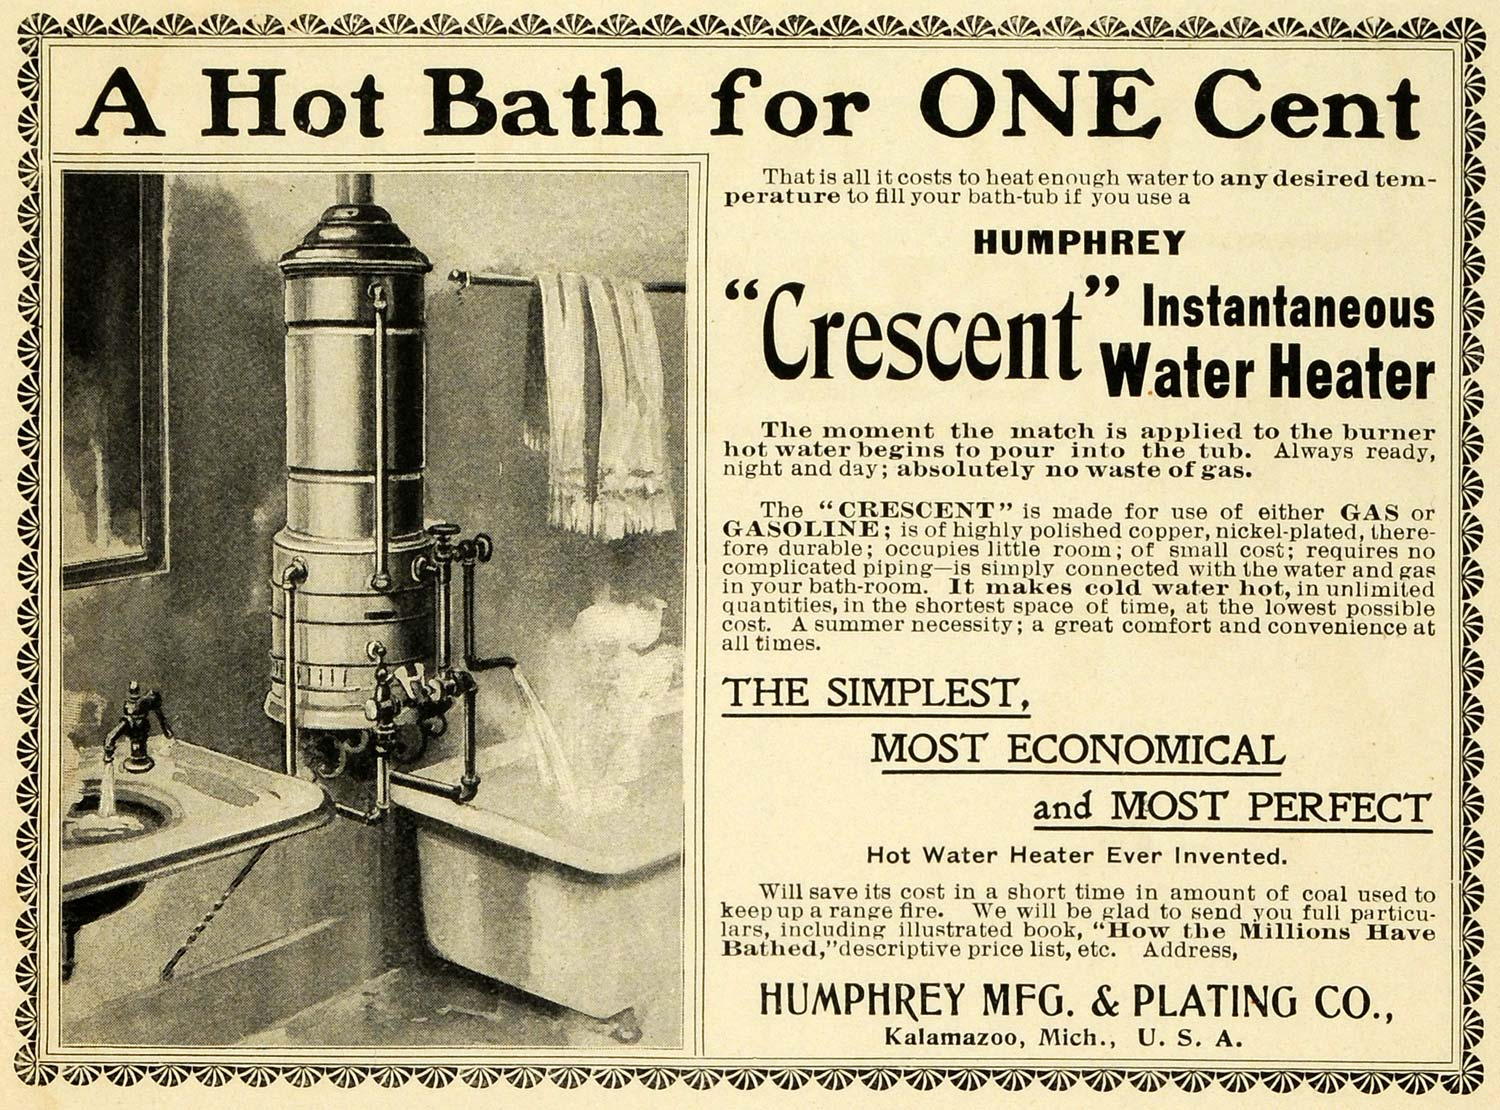 1901 Ad Humphrey Crescent Instantaneous Water Heater Tub Natural Gas EM2